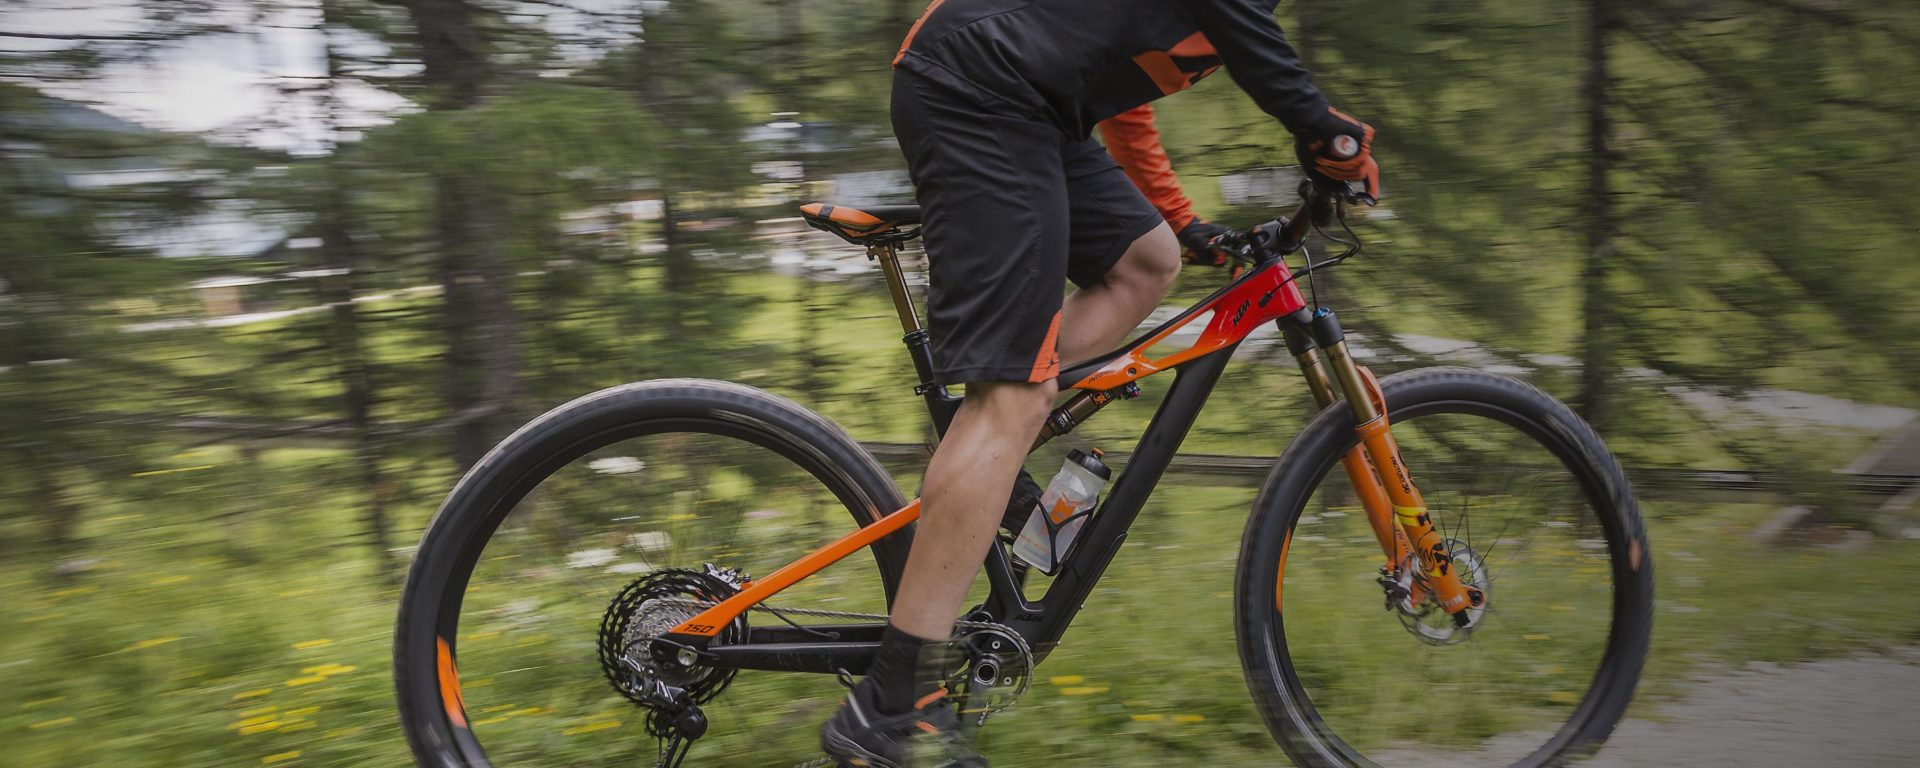 Ibis Mojo HD de Philou, update !